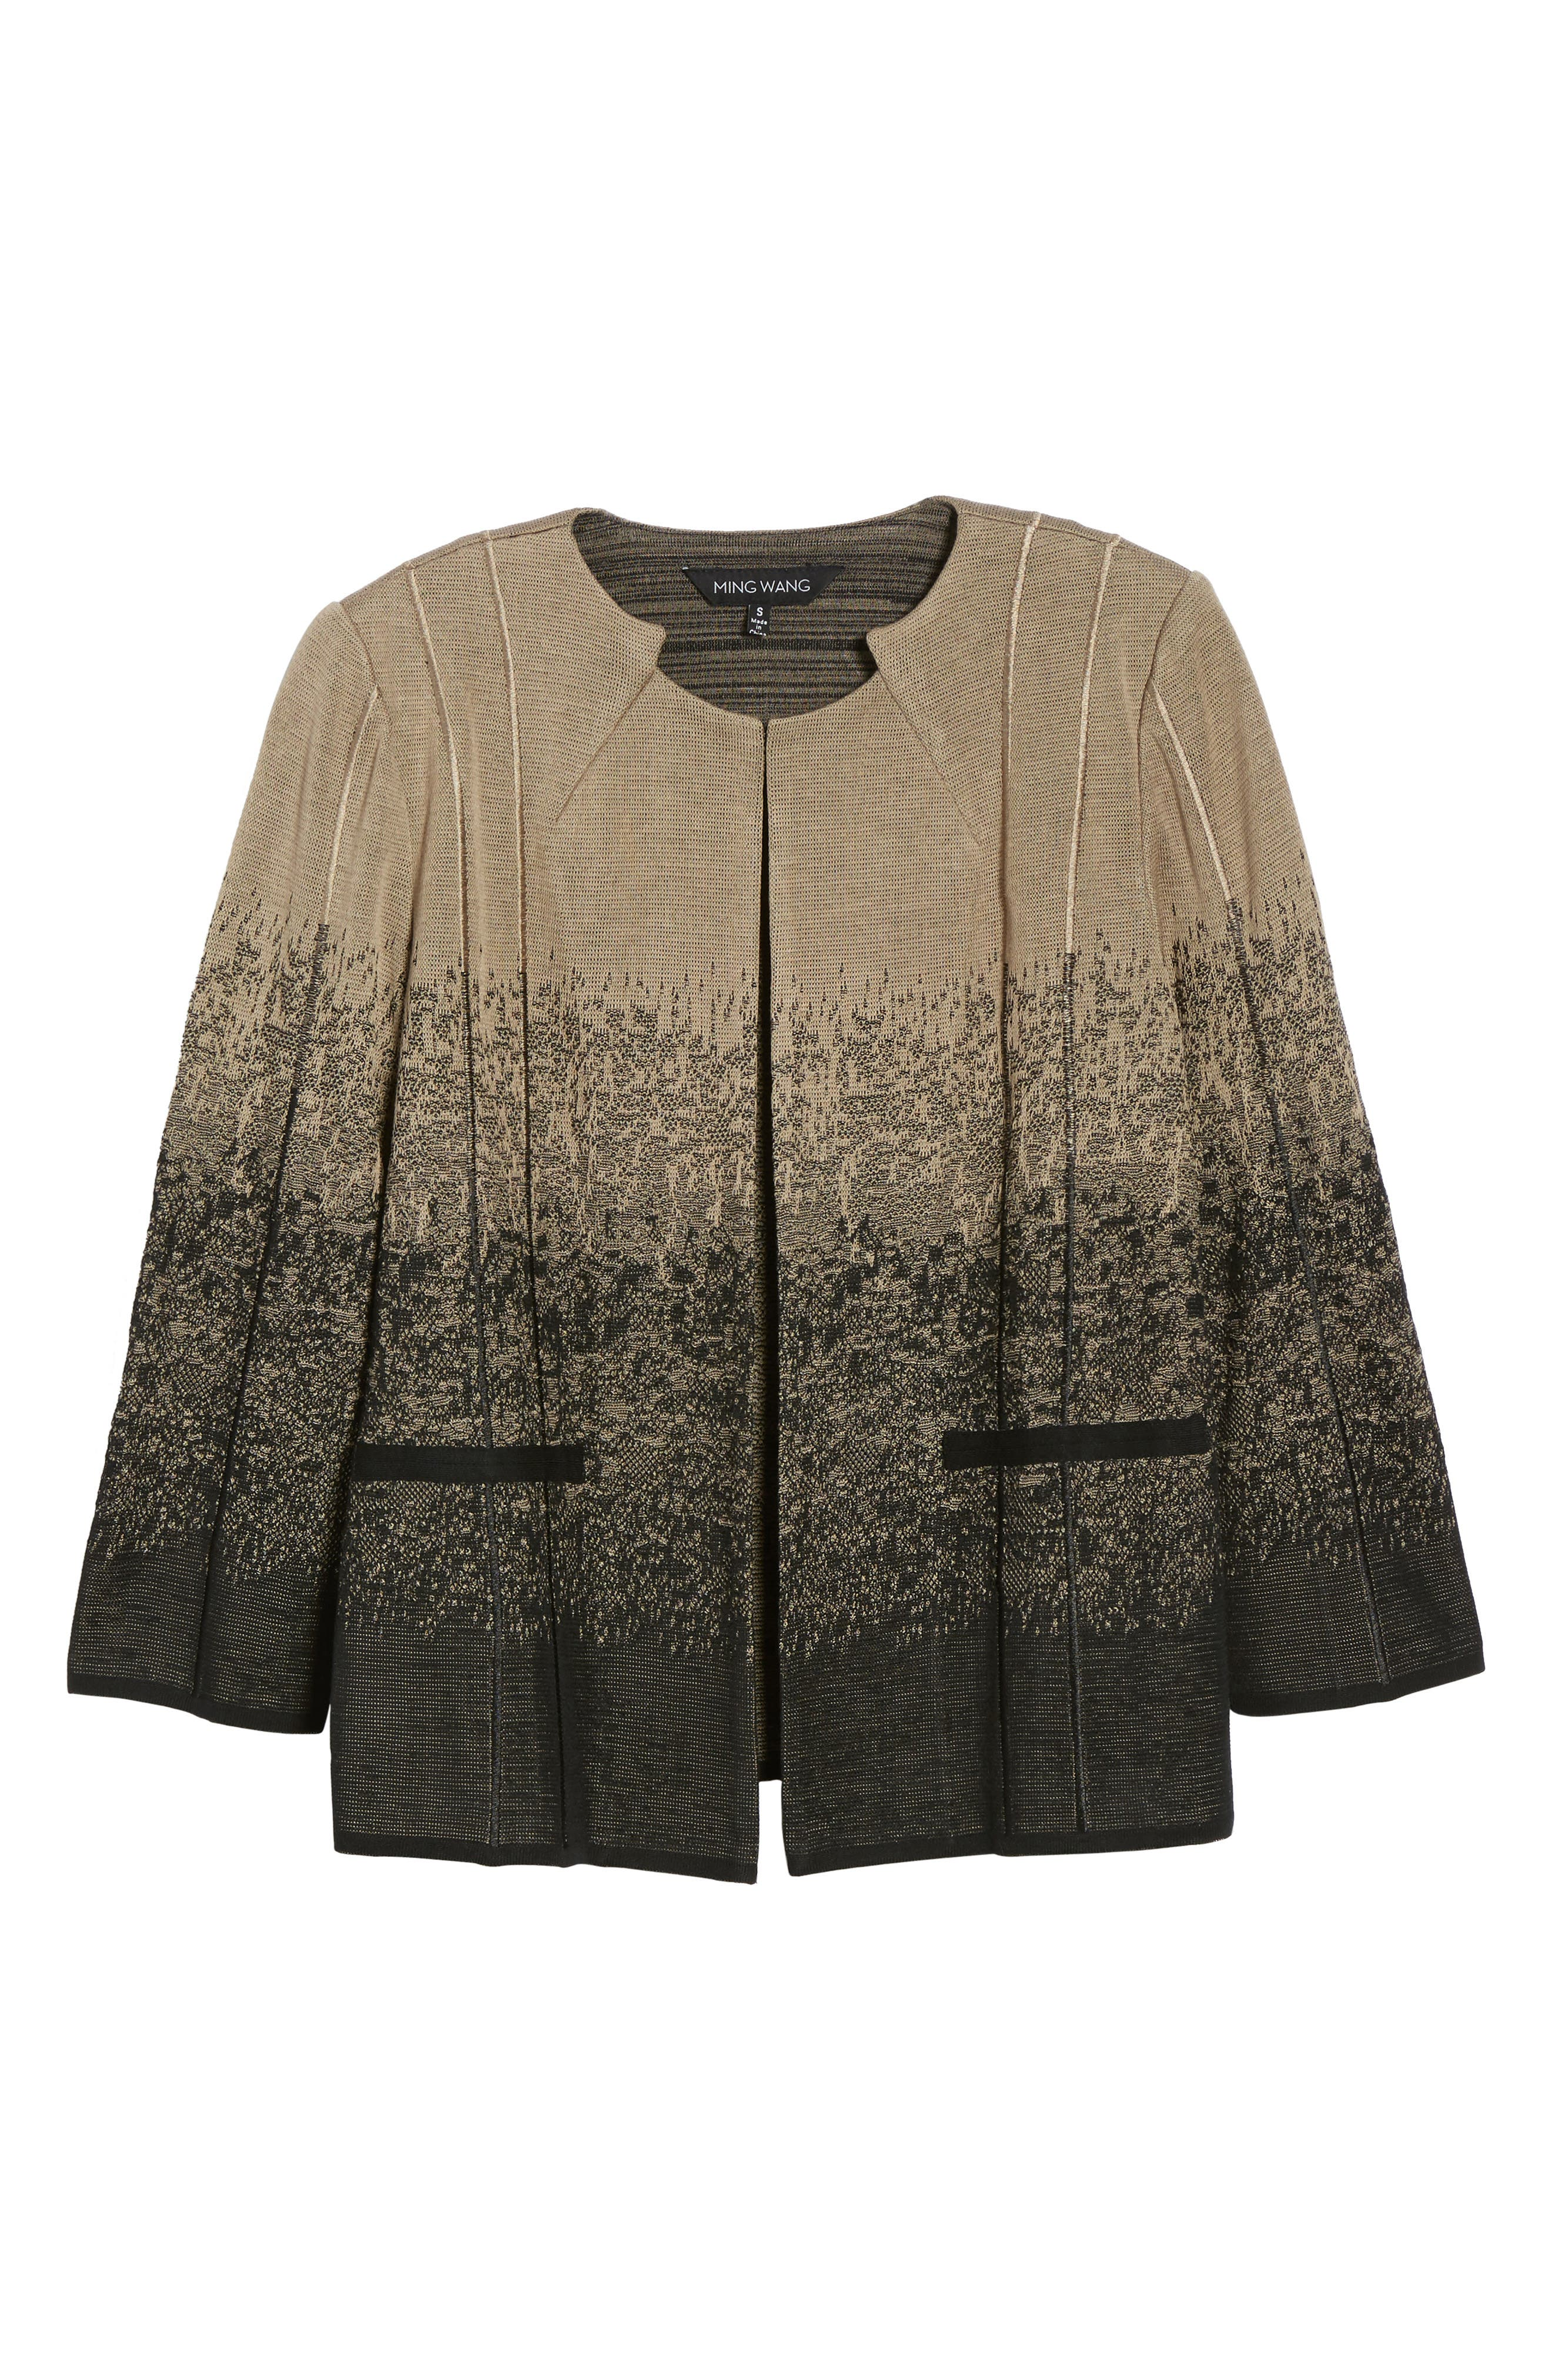 Jacquard Knit Jacket,                             Alternate thumbnail 5, color,                             250